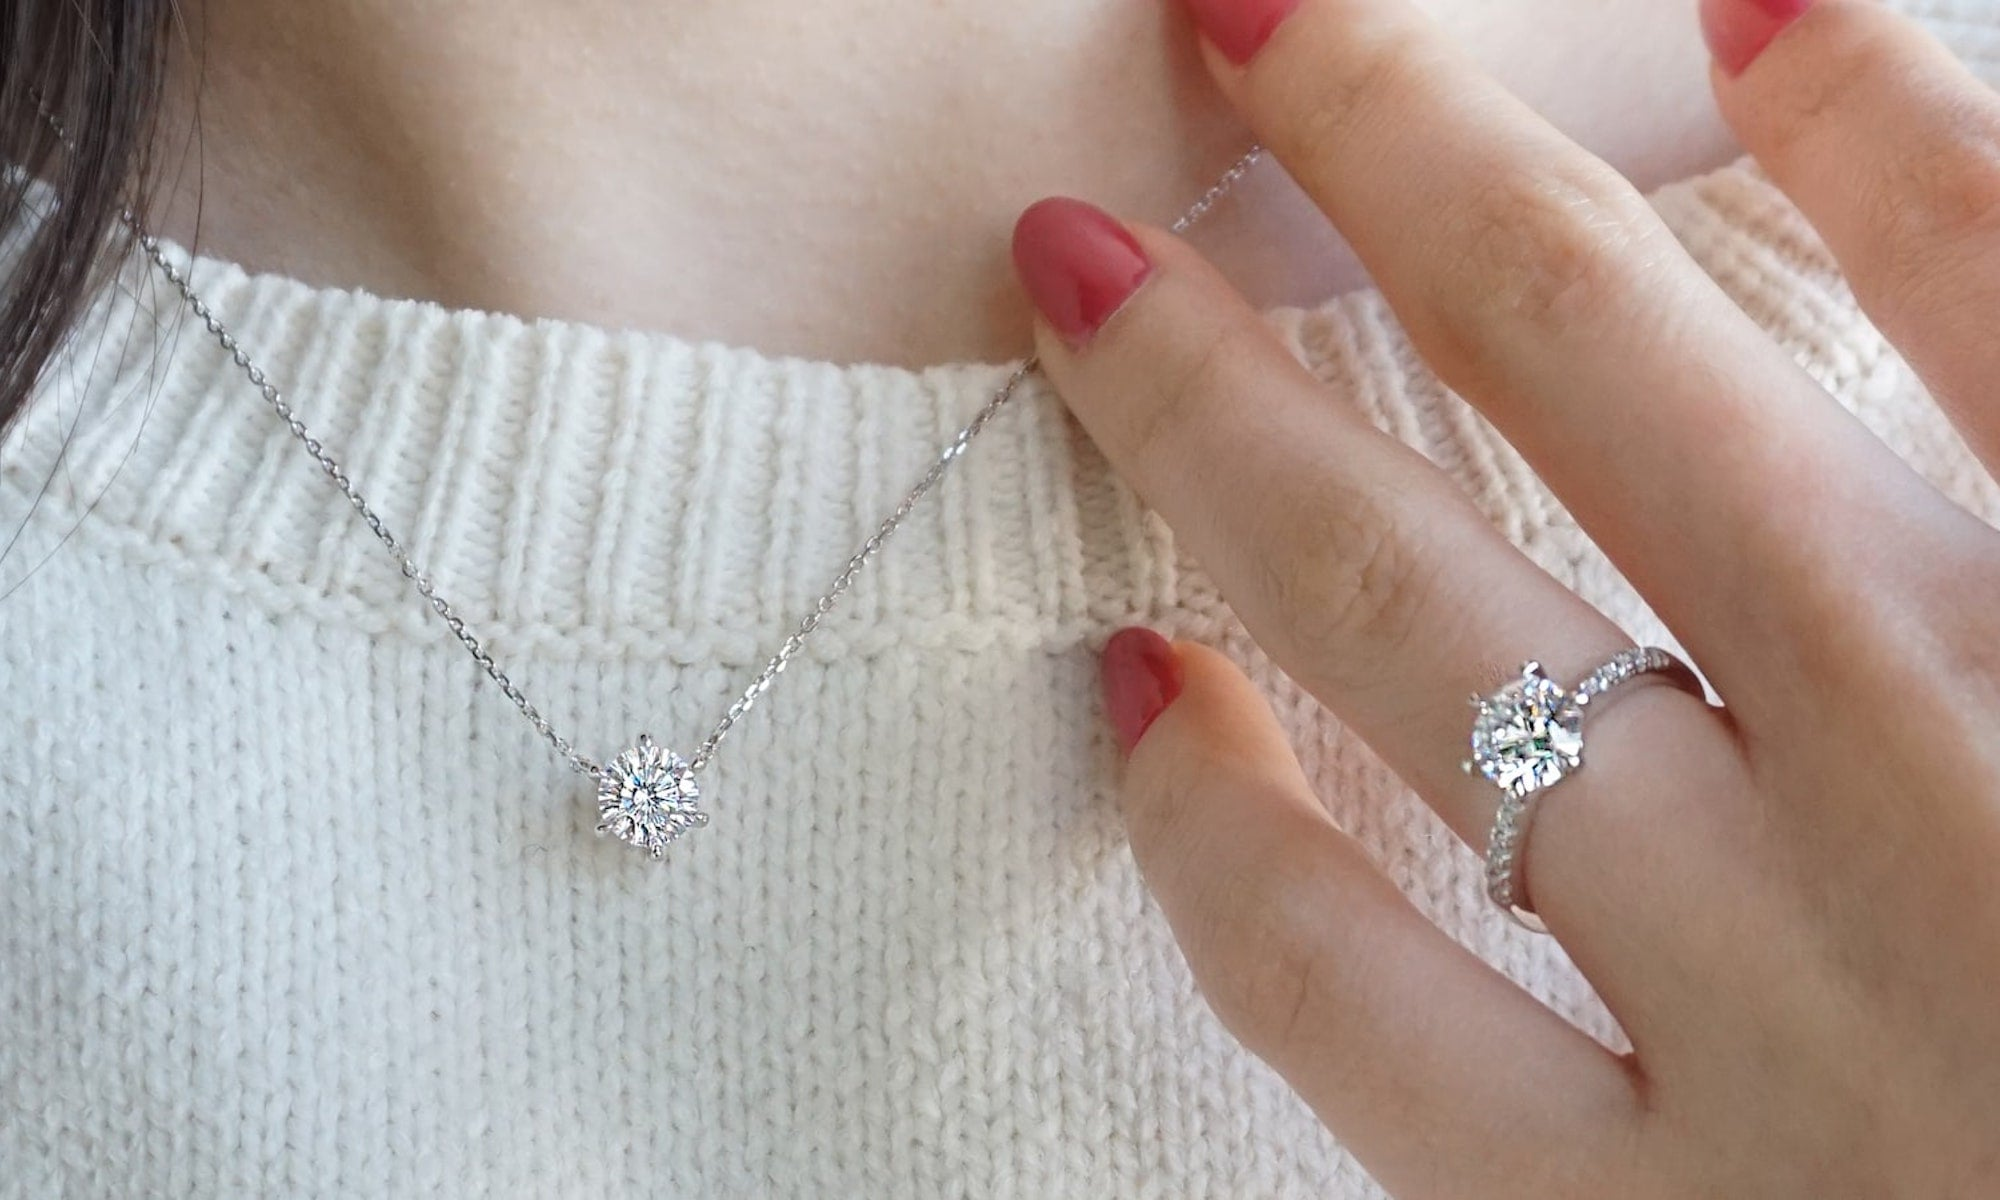 J.Rosea simulated diamond jewelry collection